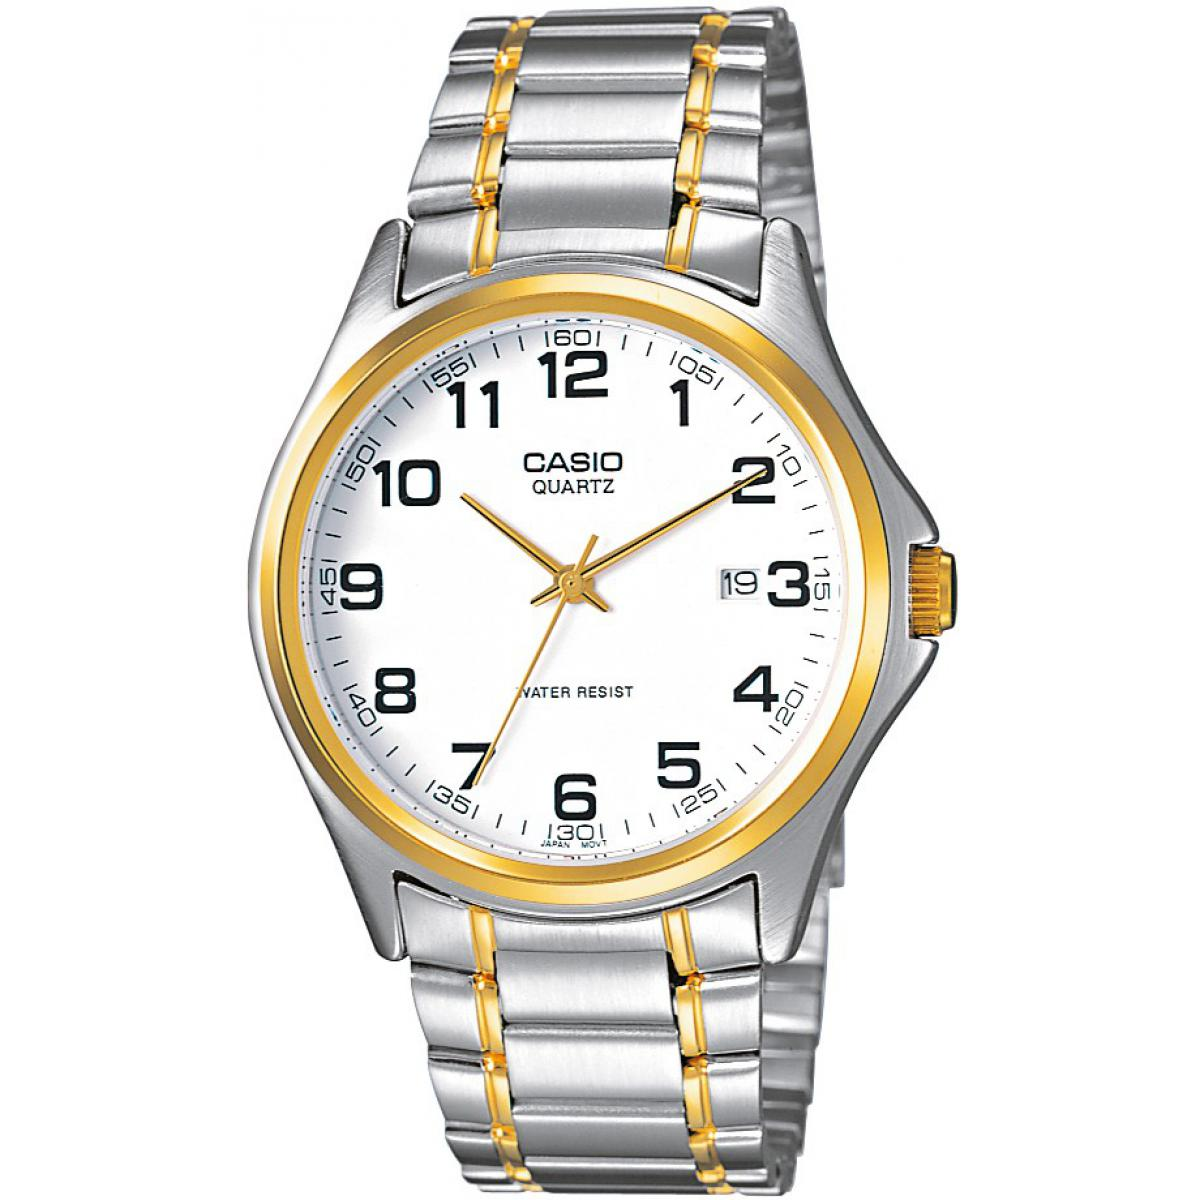 Montre Homme Casio Acier Casio Collection MTP-1188PG-7BEF